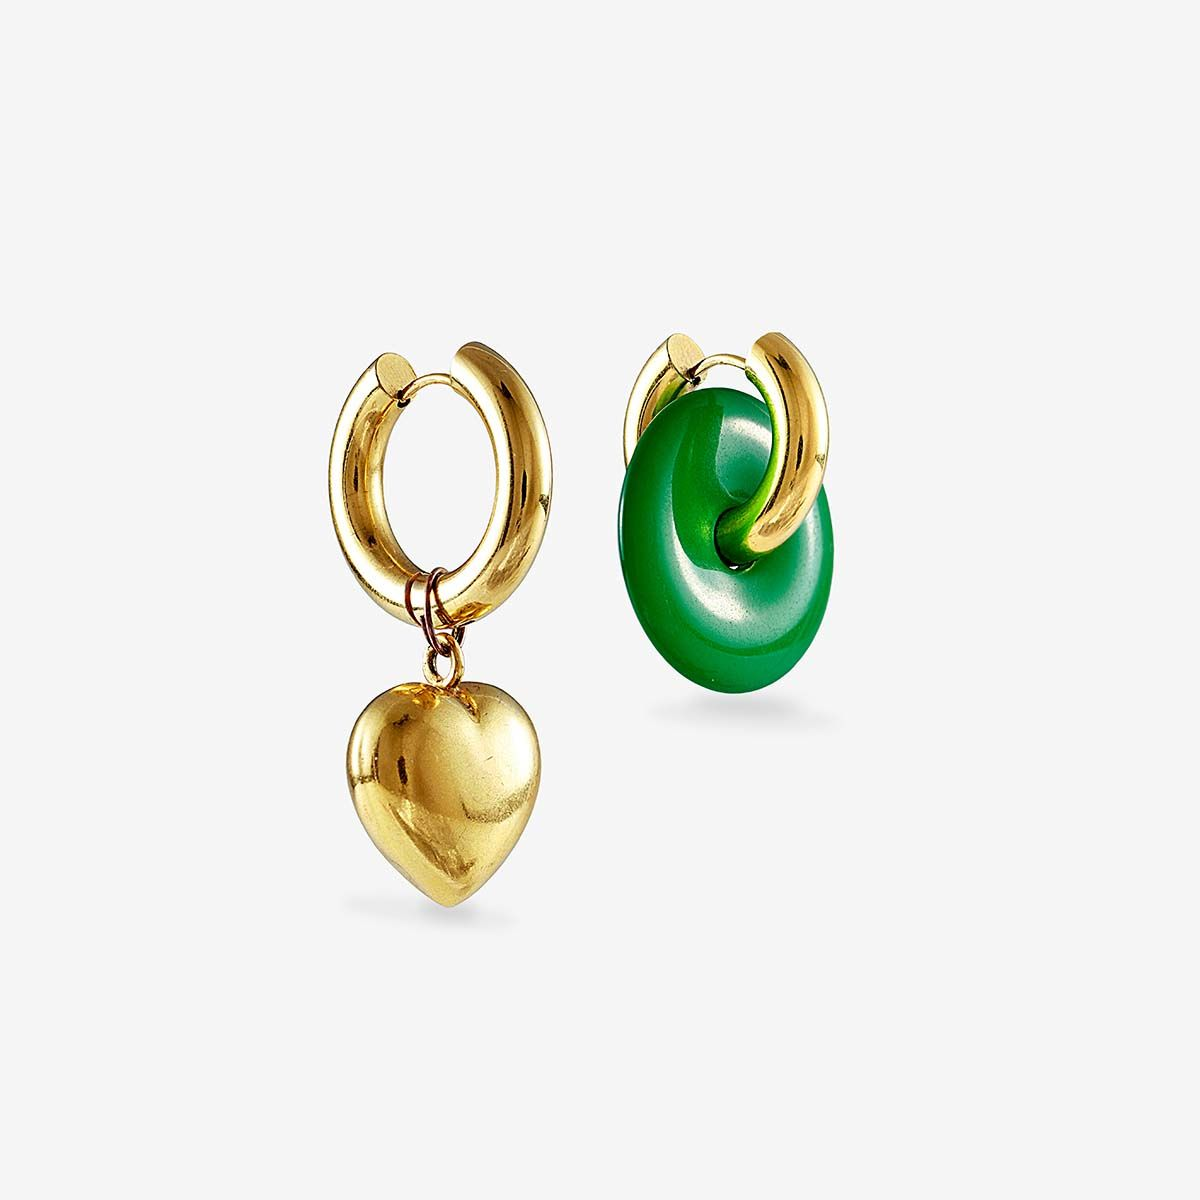 Malachite and heart earrings - Creolen - 24k vergoldet